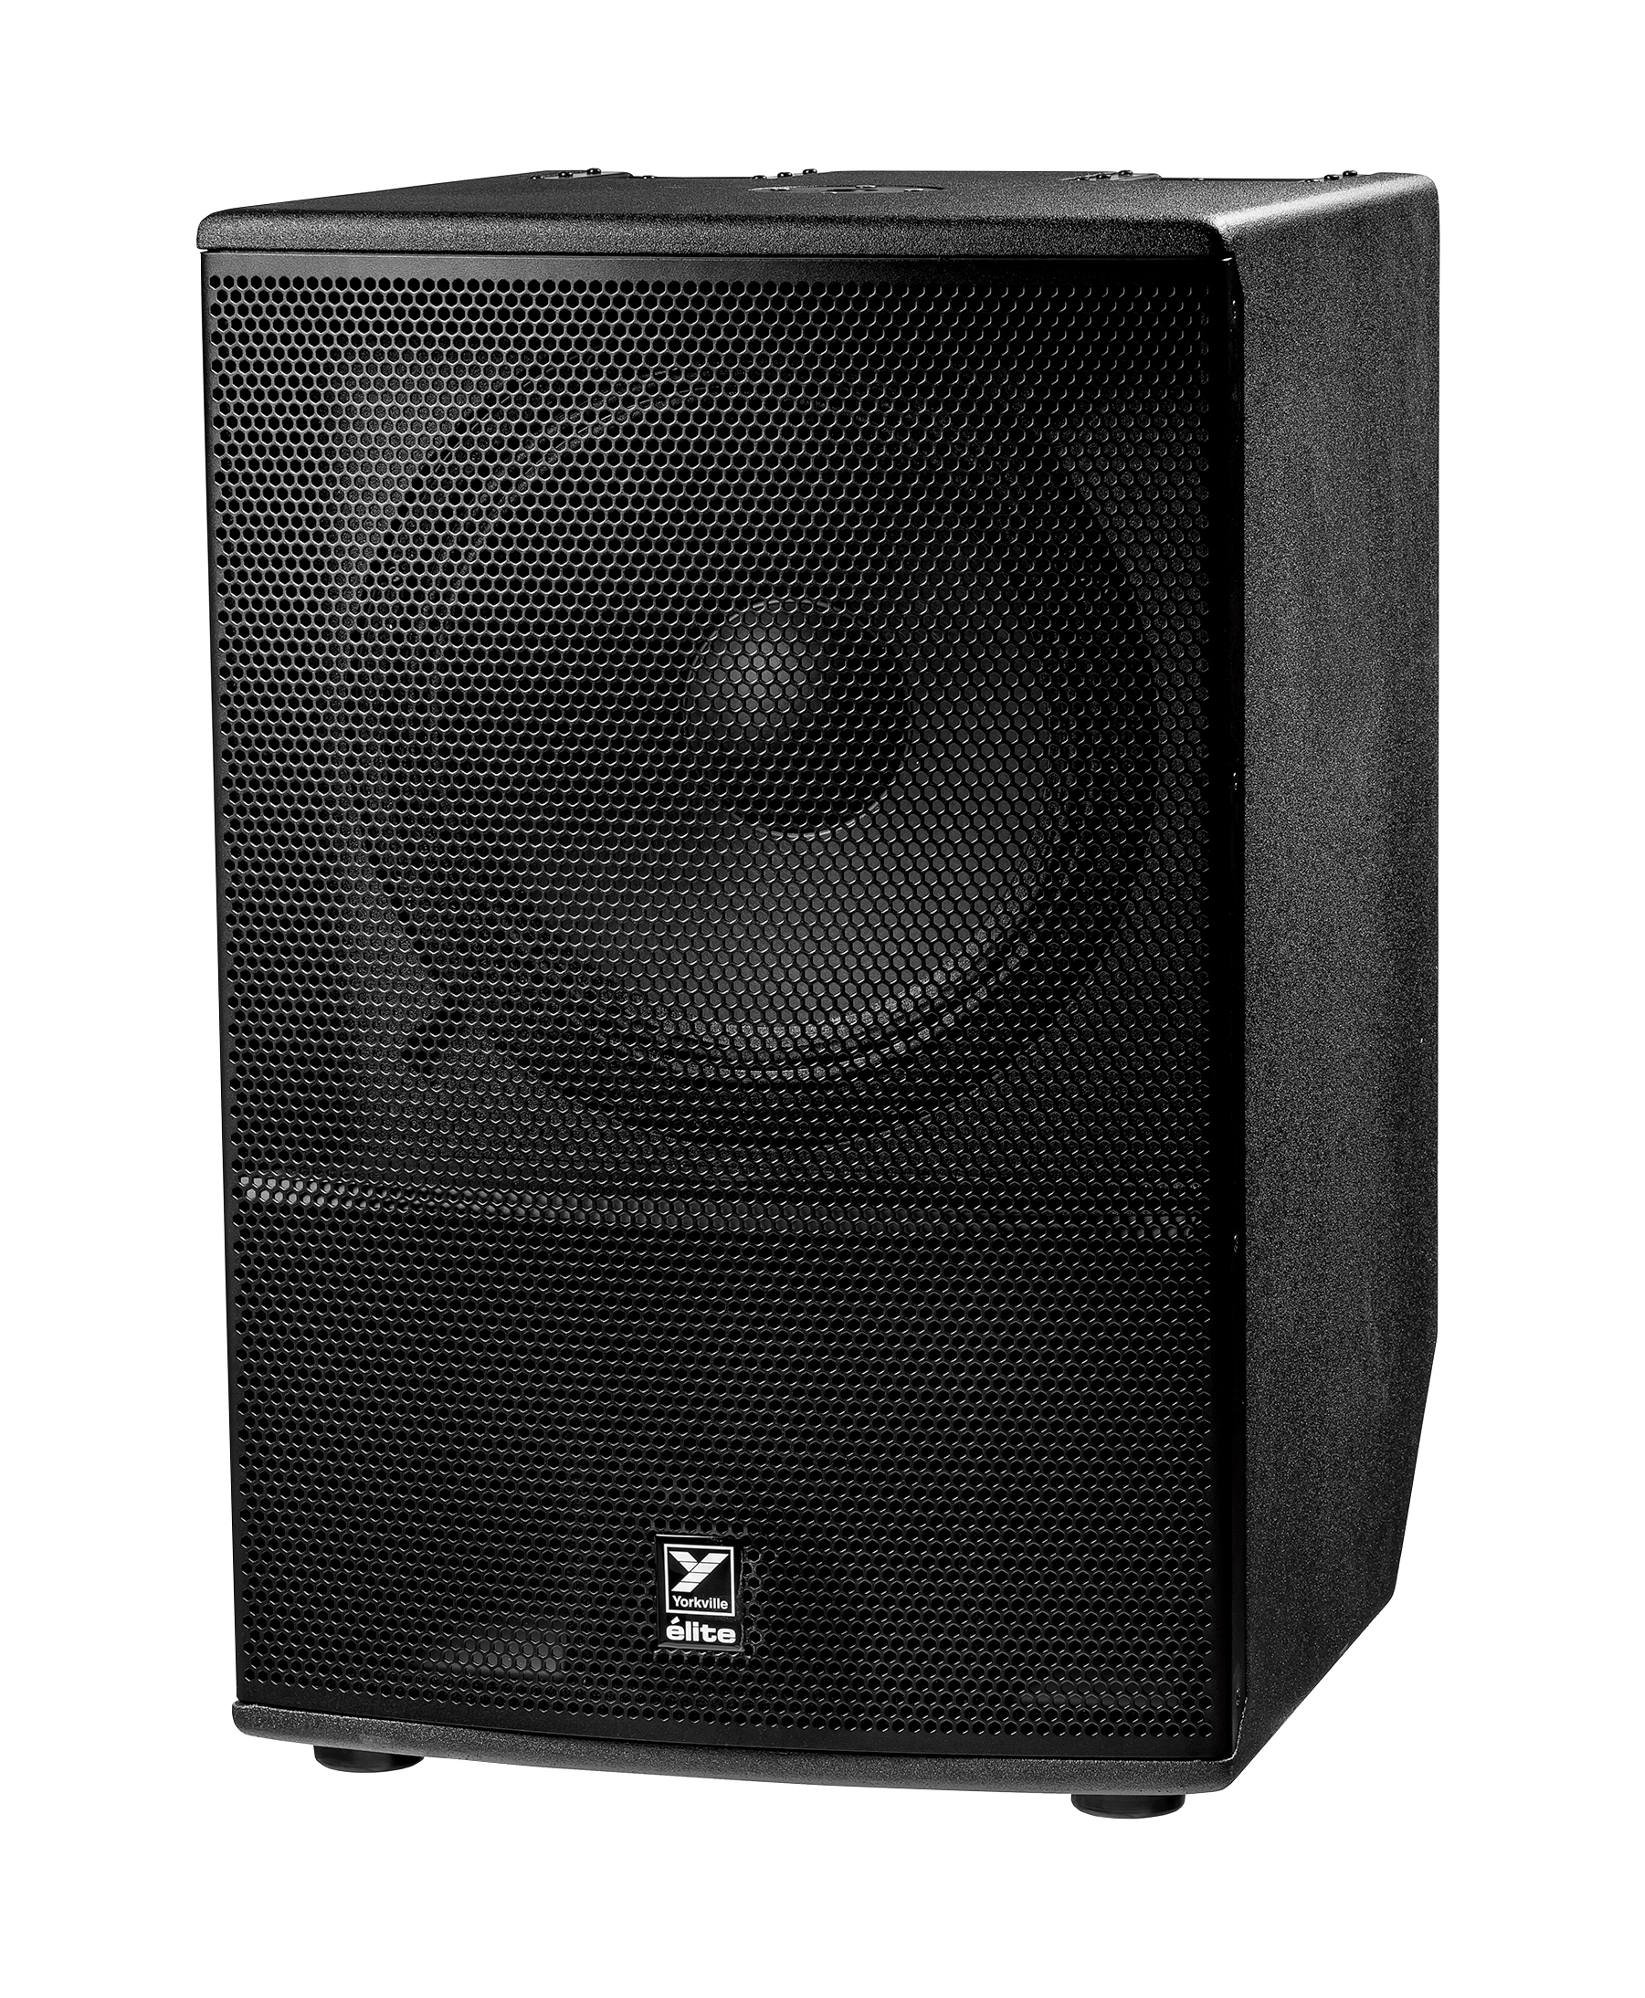 yorkville es18p 1600w 1x 18 powered subwoofer full compass systems. Black Bedroom Furniture Sets. Home Design Ideas